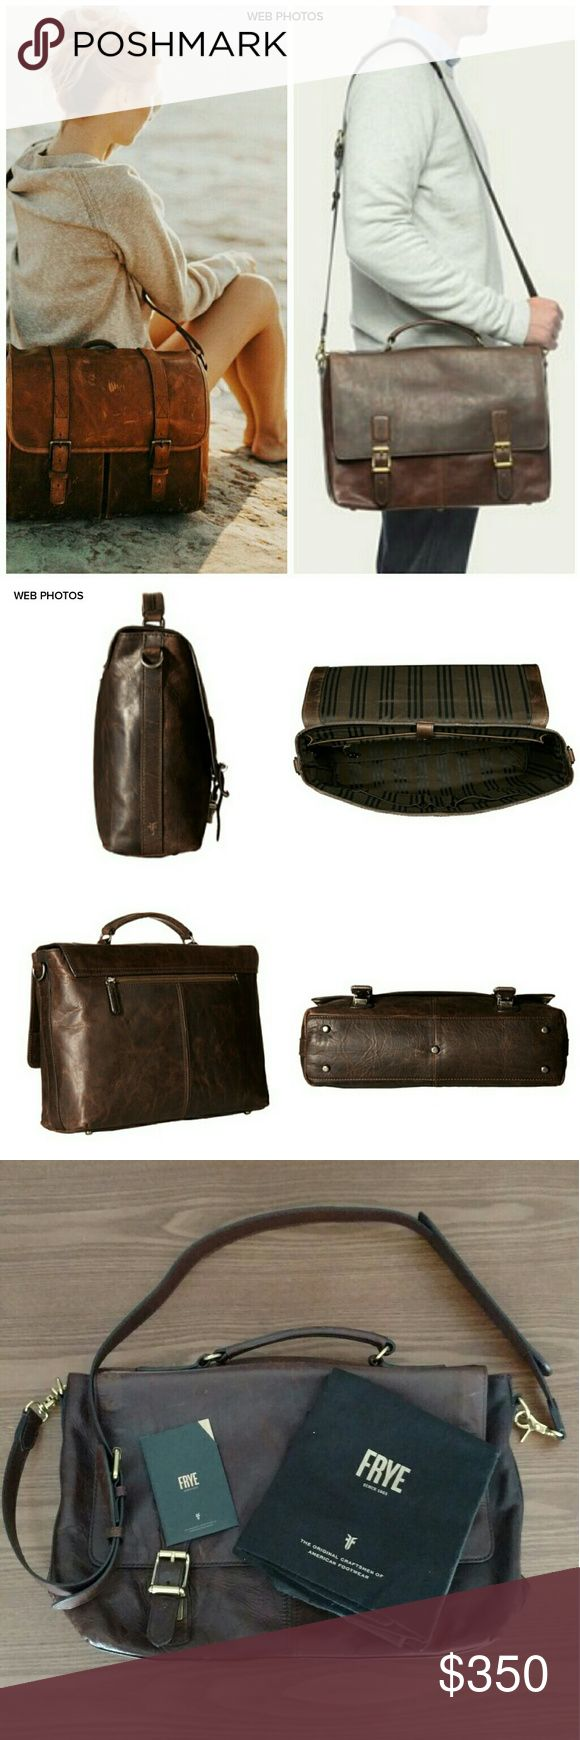 "FRYE Logan Top Handle Bag Craftsmanship that's full of character. Fashioned from antique pull-up Italian leather with unique high and low tones.  Packed with functionality, this briefcase includes a padded laptop compartment, two electronics pockets and a key ring clip. - Italian leather - Antique metal hardware - 10 3/4"" height - 13"" width - 2"" handle drop - Adjustable strap Carried for appx 2 weeks.  Leather is starting to get broken in.  Has tags, and dustbag.  See pics. Frye Bags"